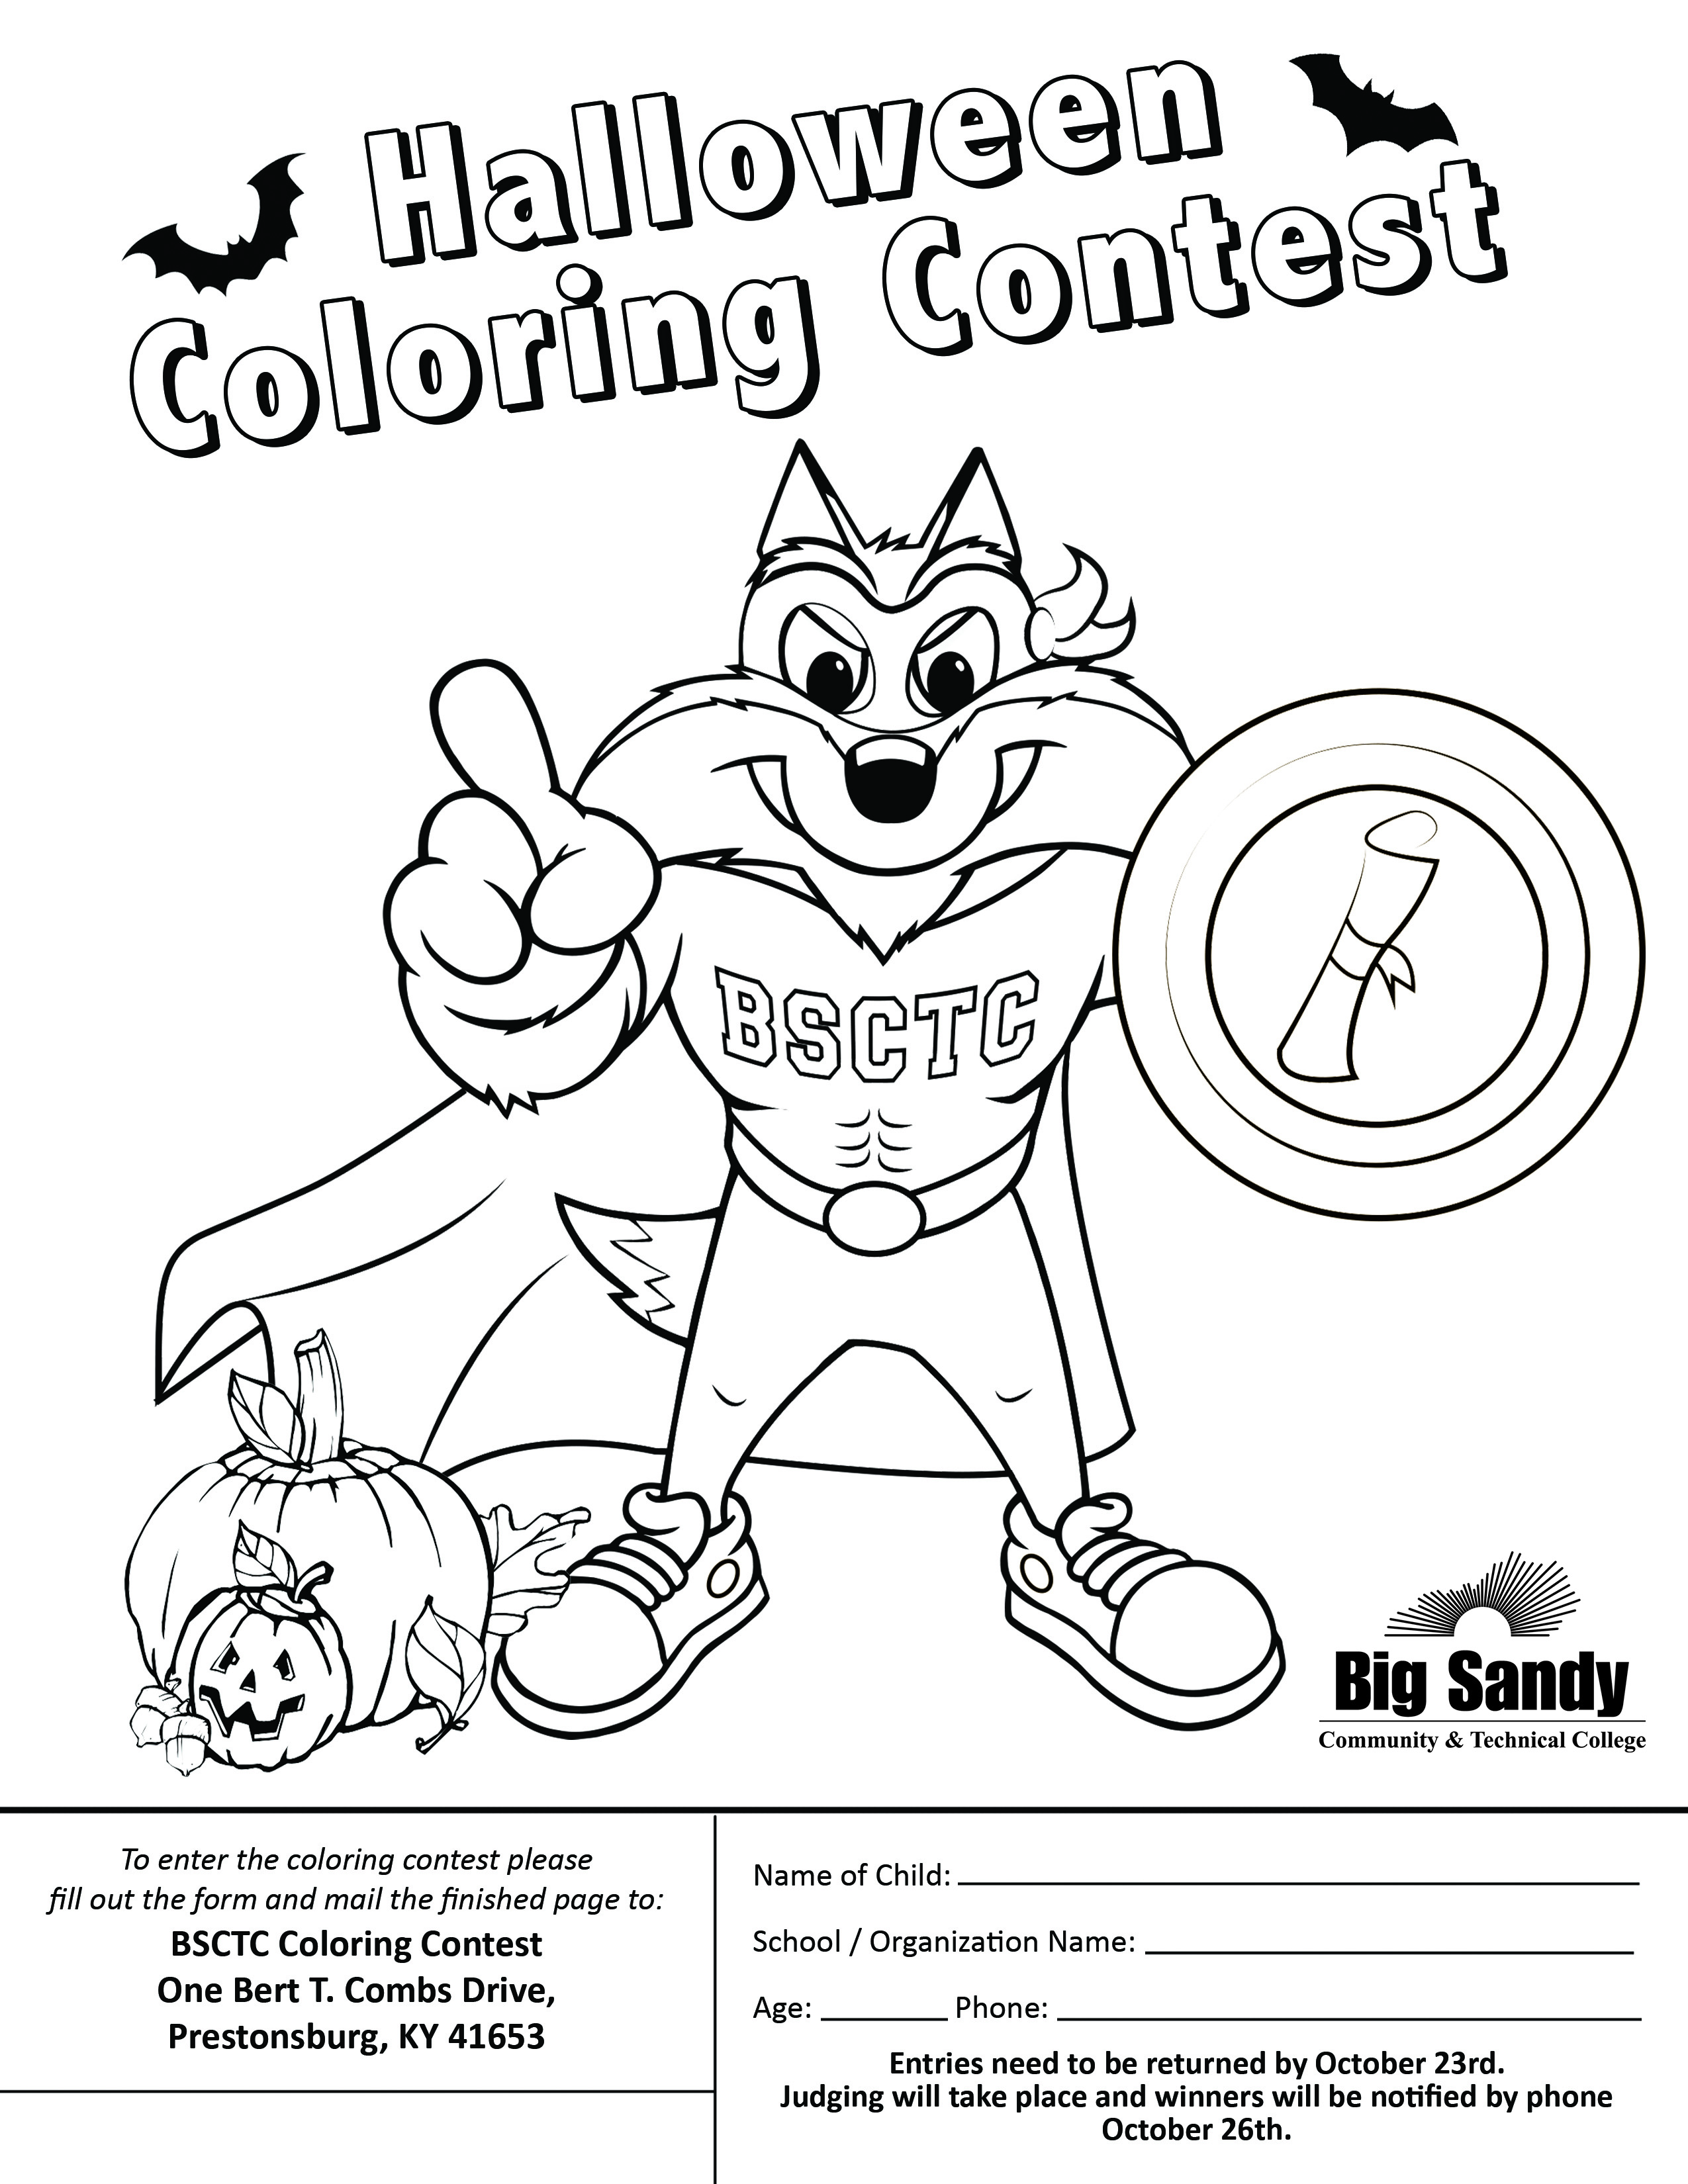 Big Sandy Community And Technical College Hosting Coloring Contest